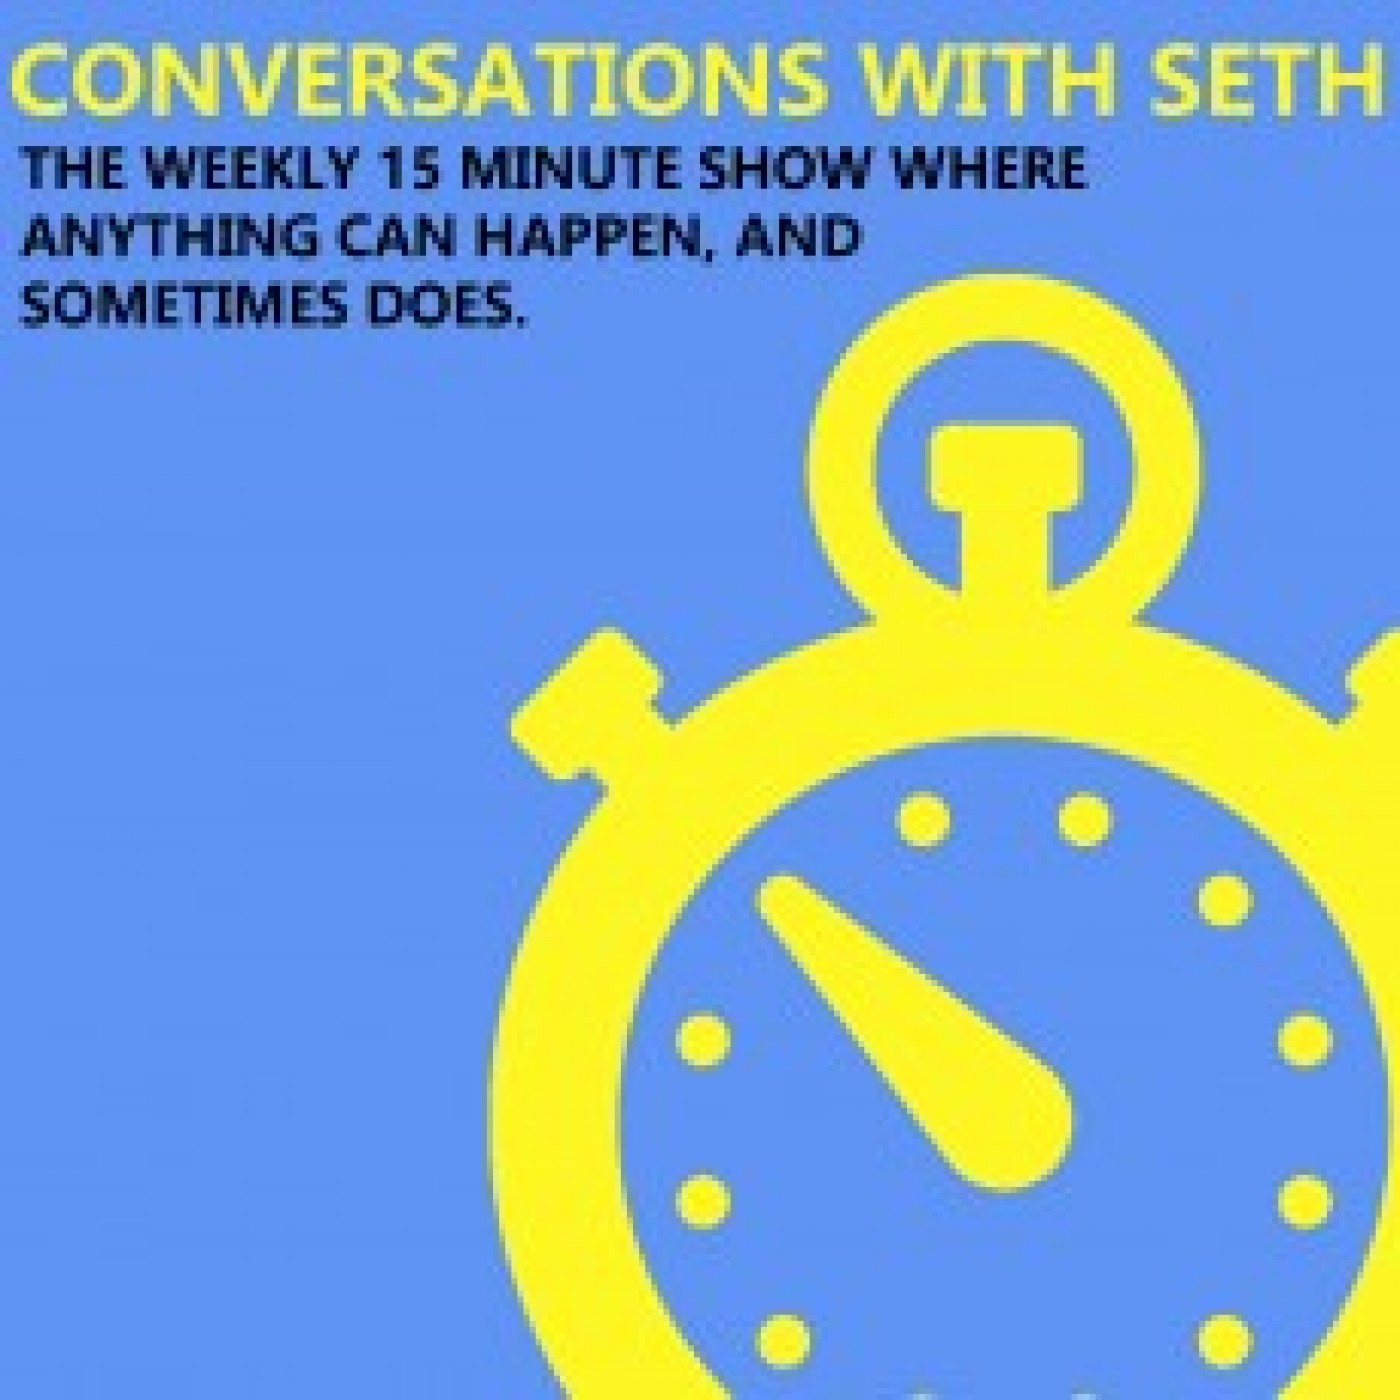 Conversations with Seth!